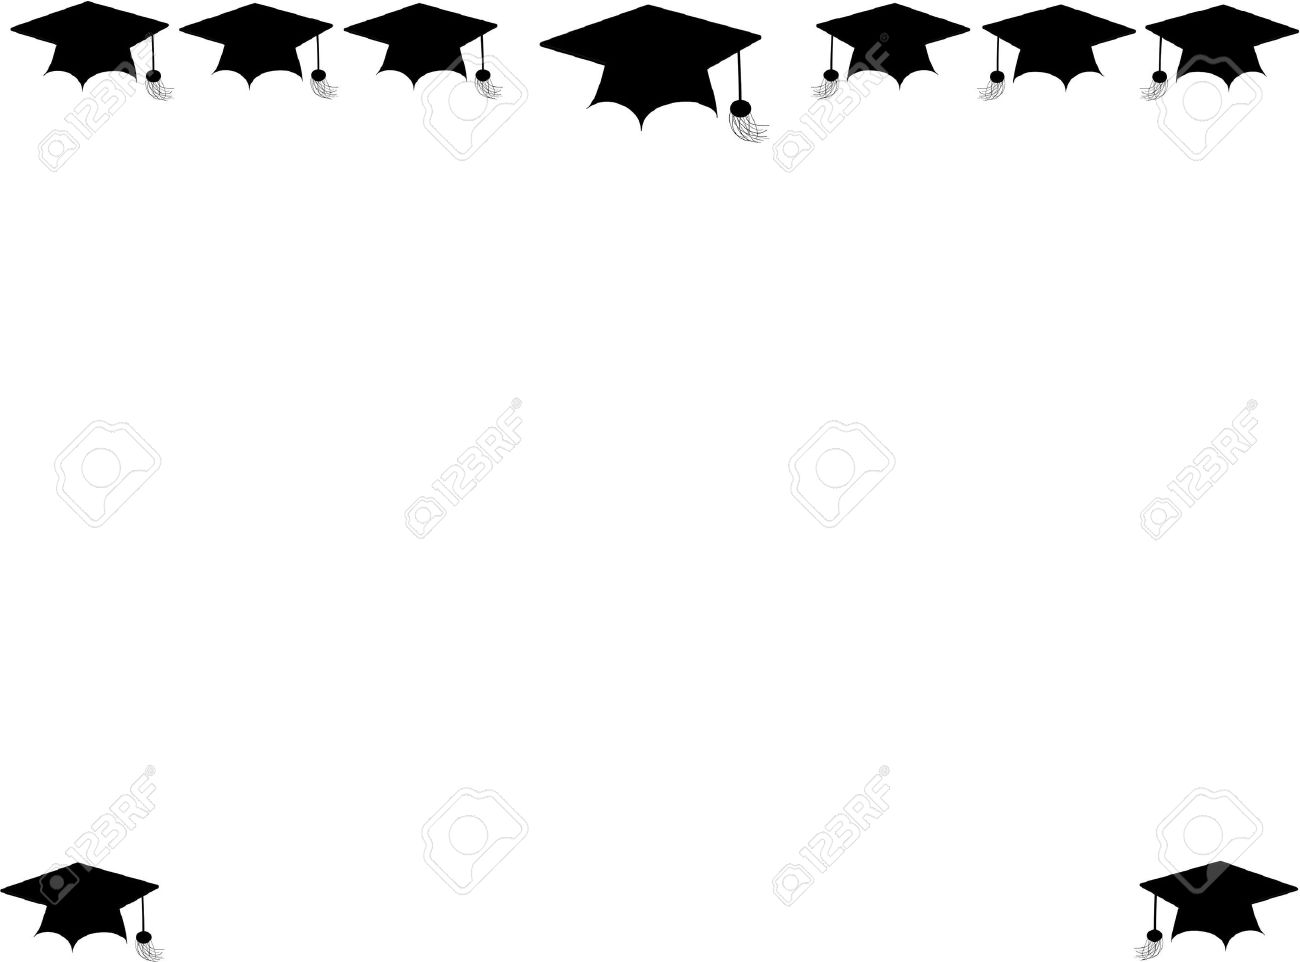 Best Graduation Border #11939 - Clipartion.com